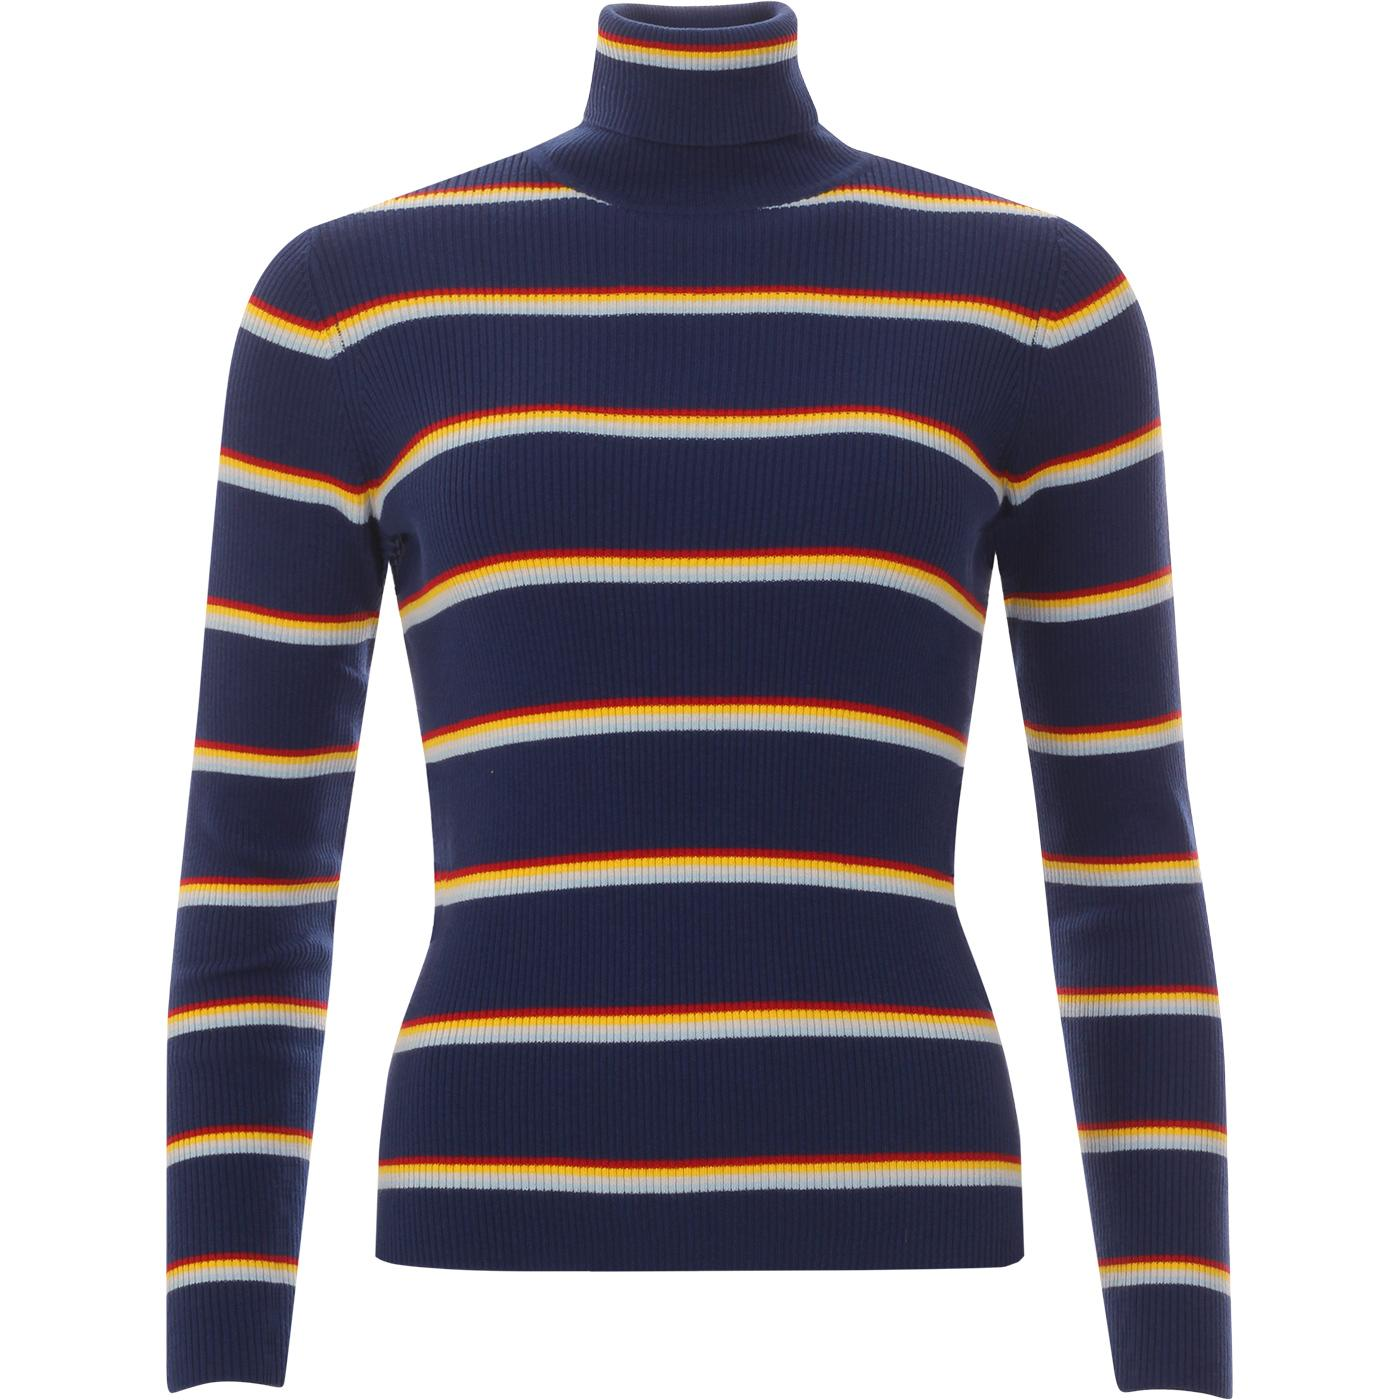 WRANGLER Womens Retro Stripe Turtle Neck Jumper BD